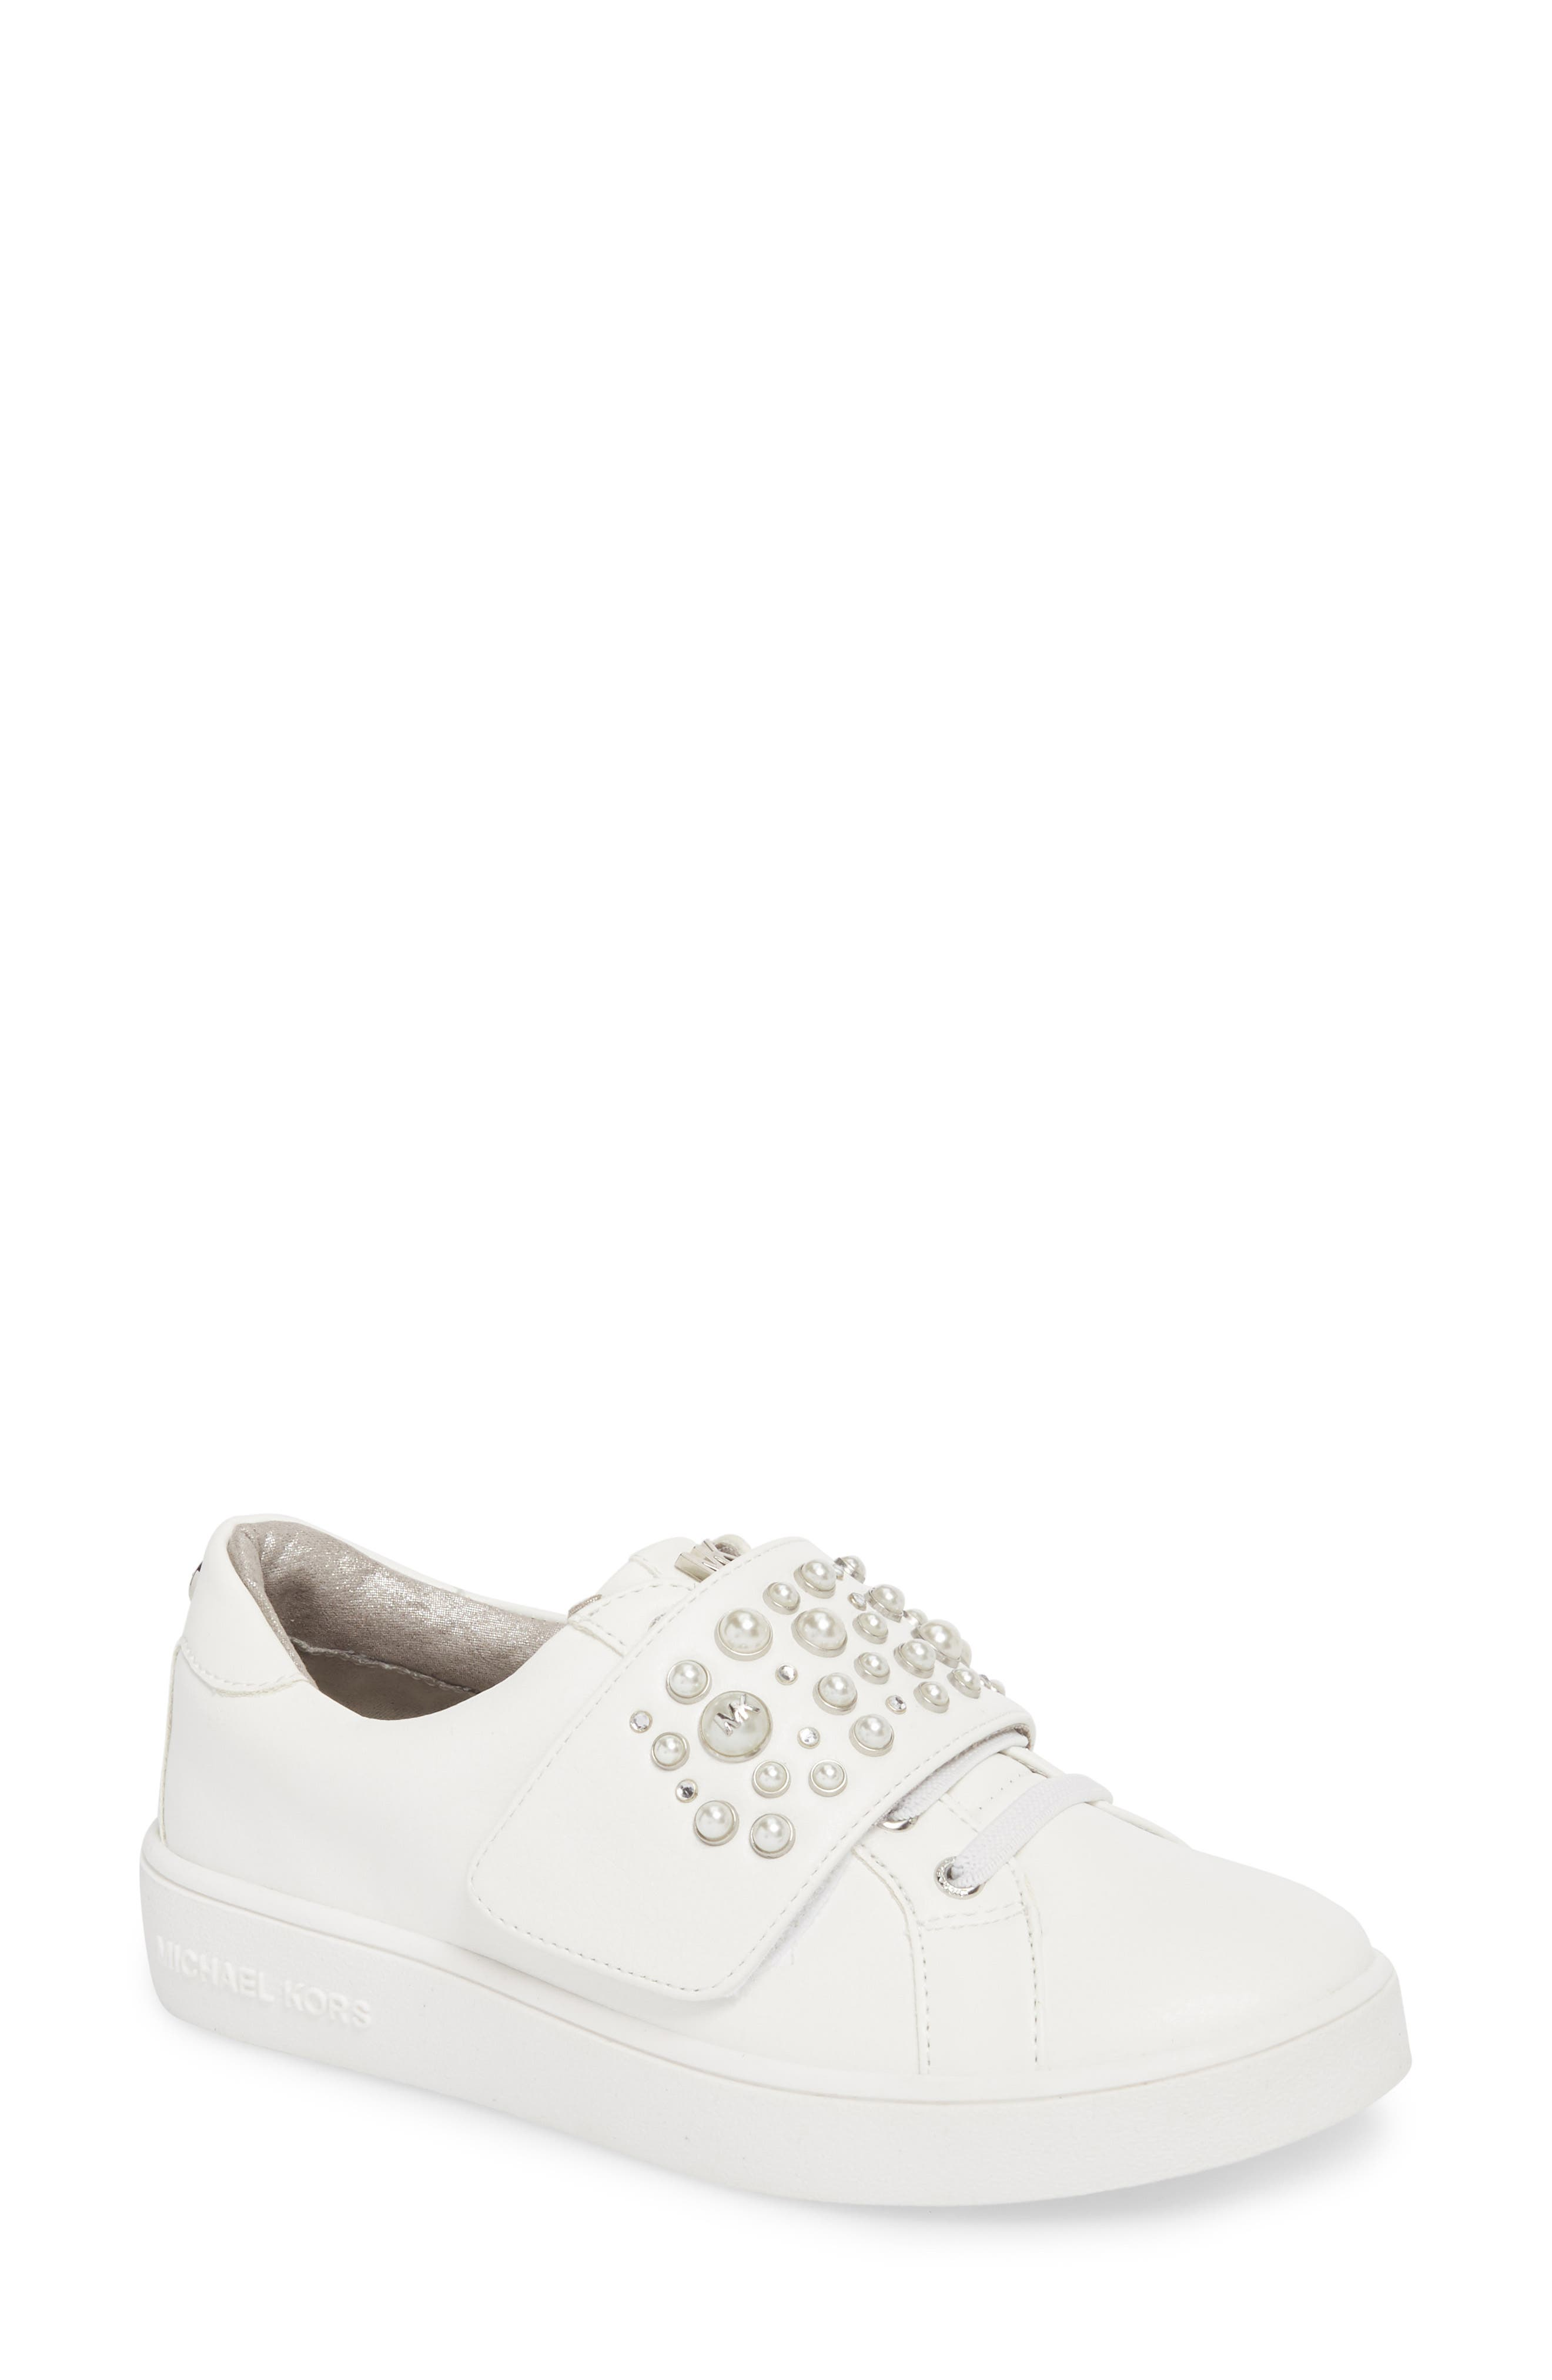 Ivy Embellished Metallic Sneaker,                             Main thumbnail 1, color,                             100